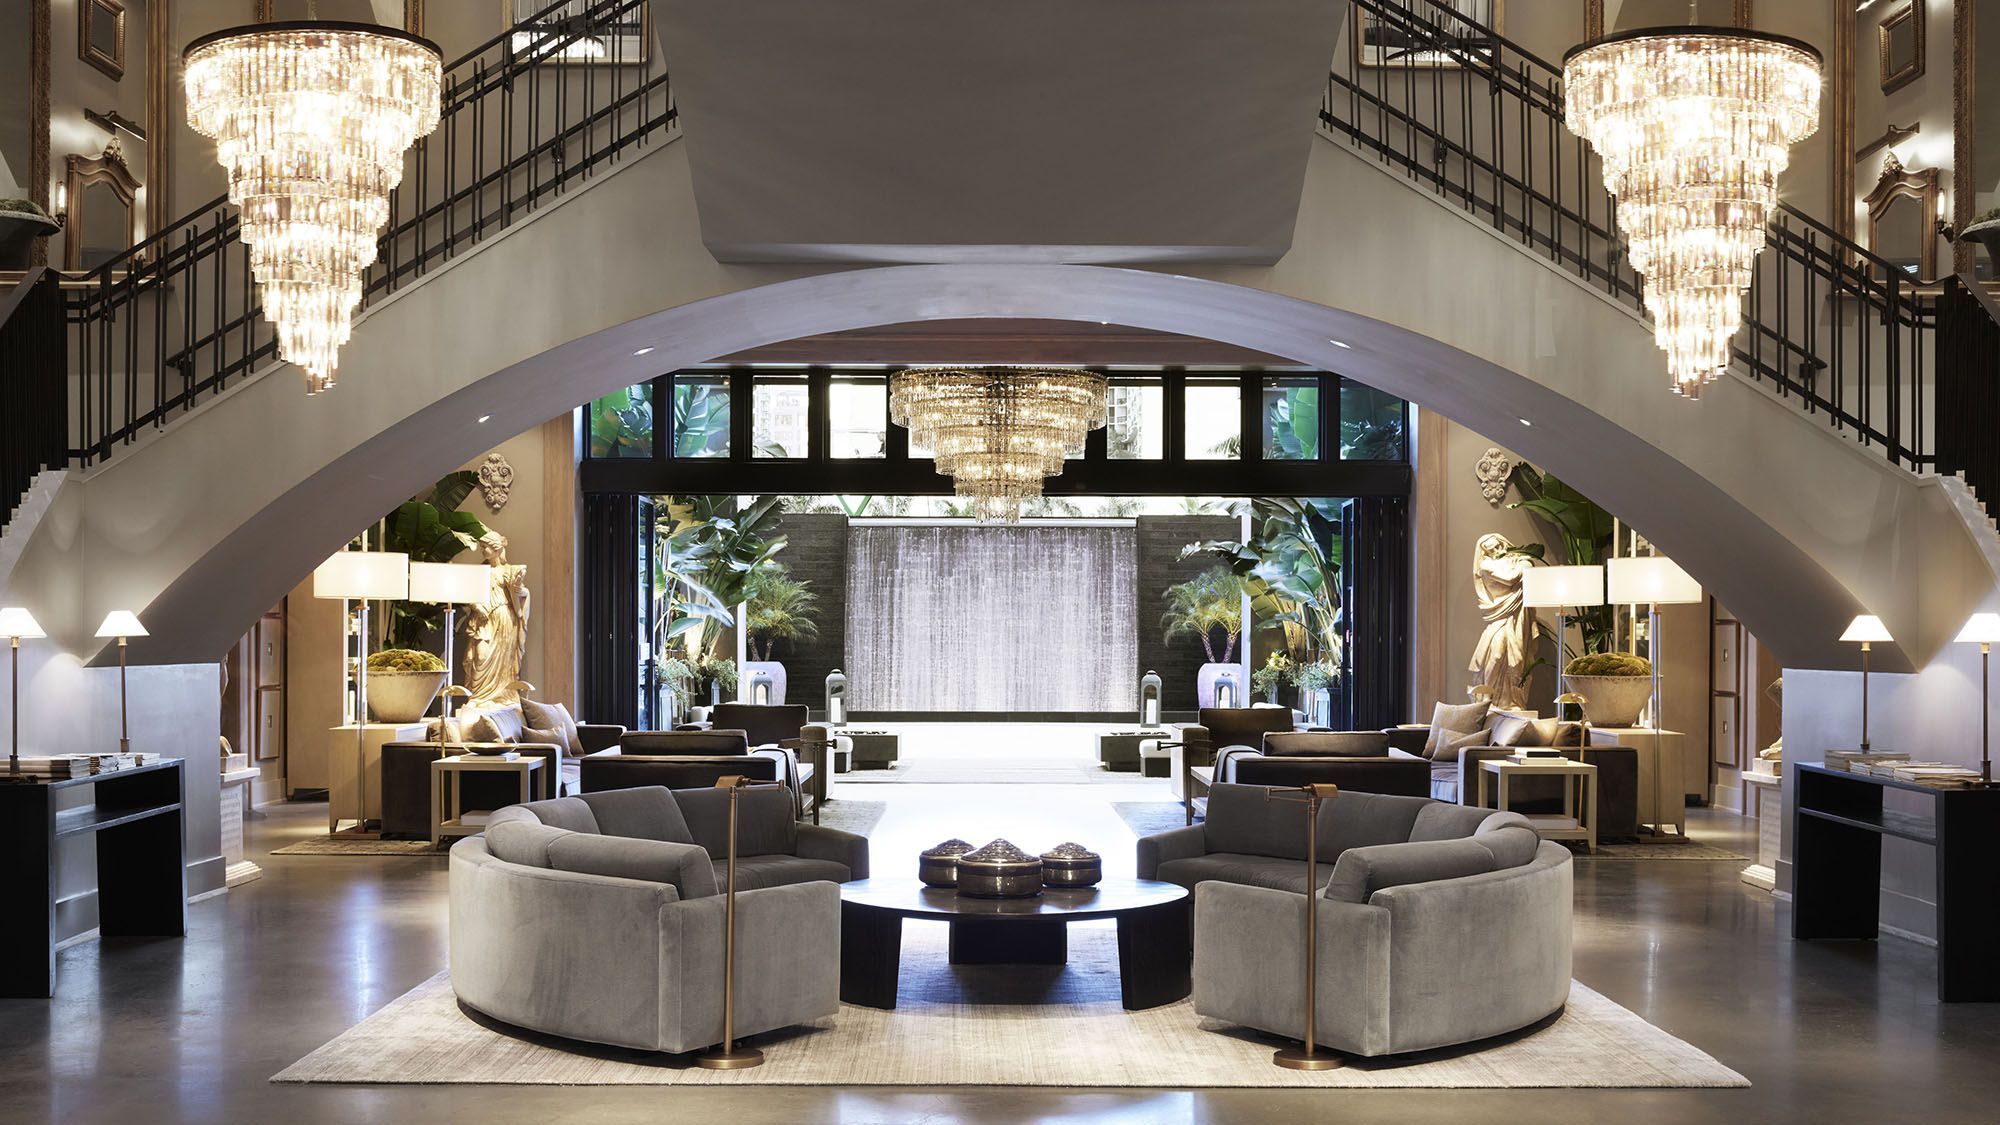 Restoration Hardware Mansion Store Palm Beach Florida